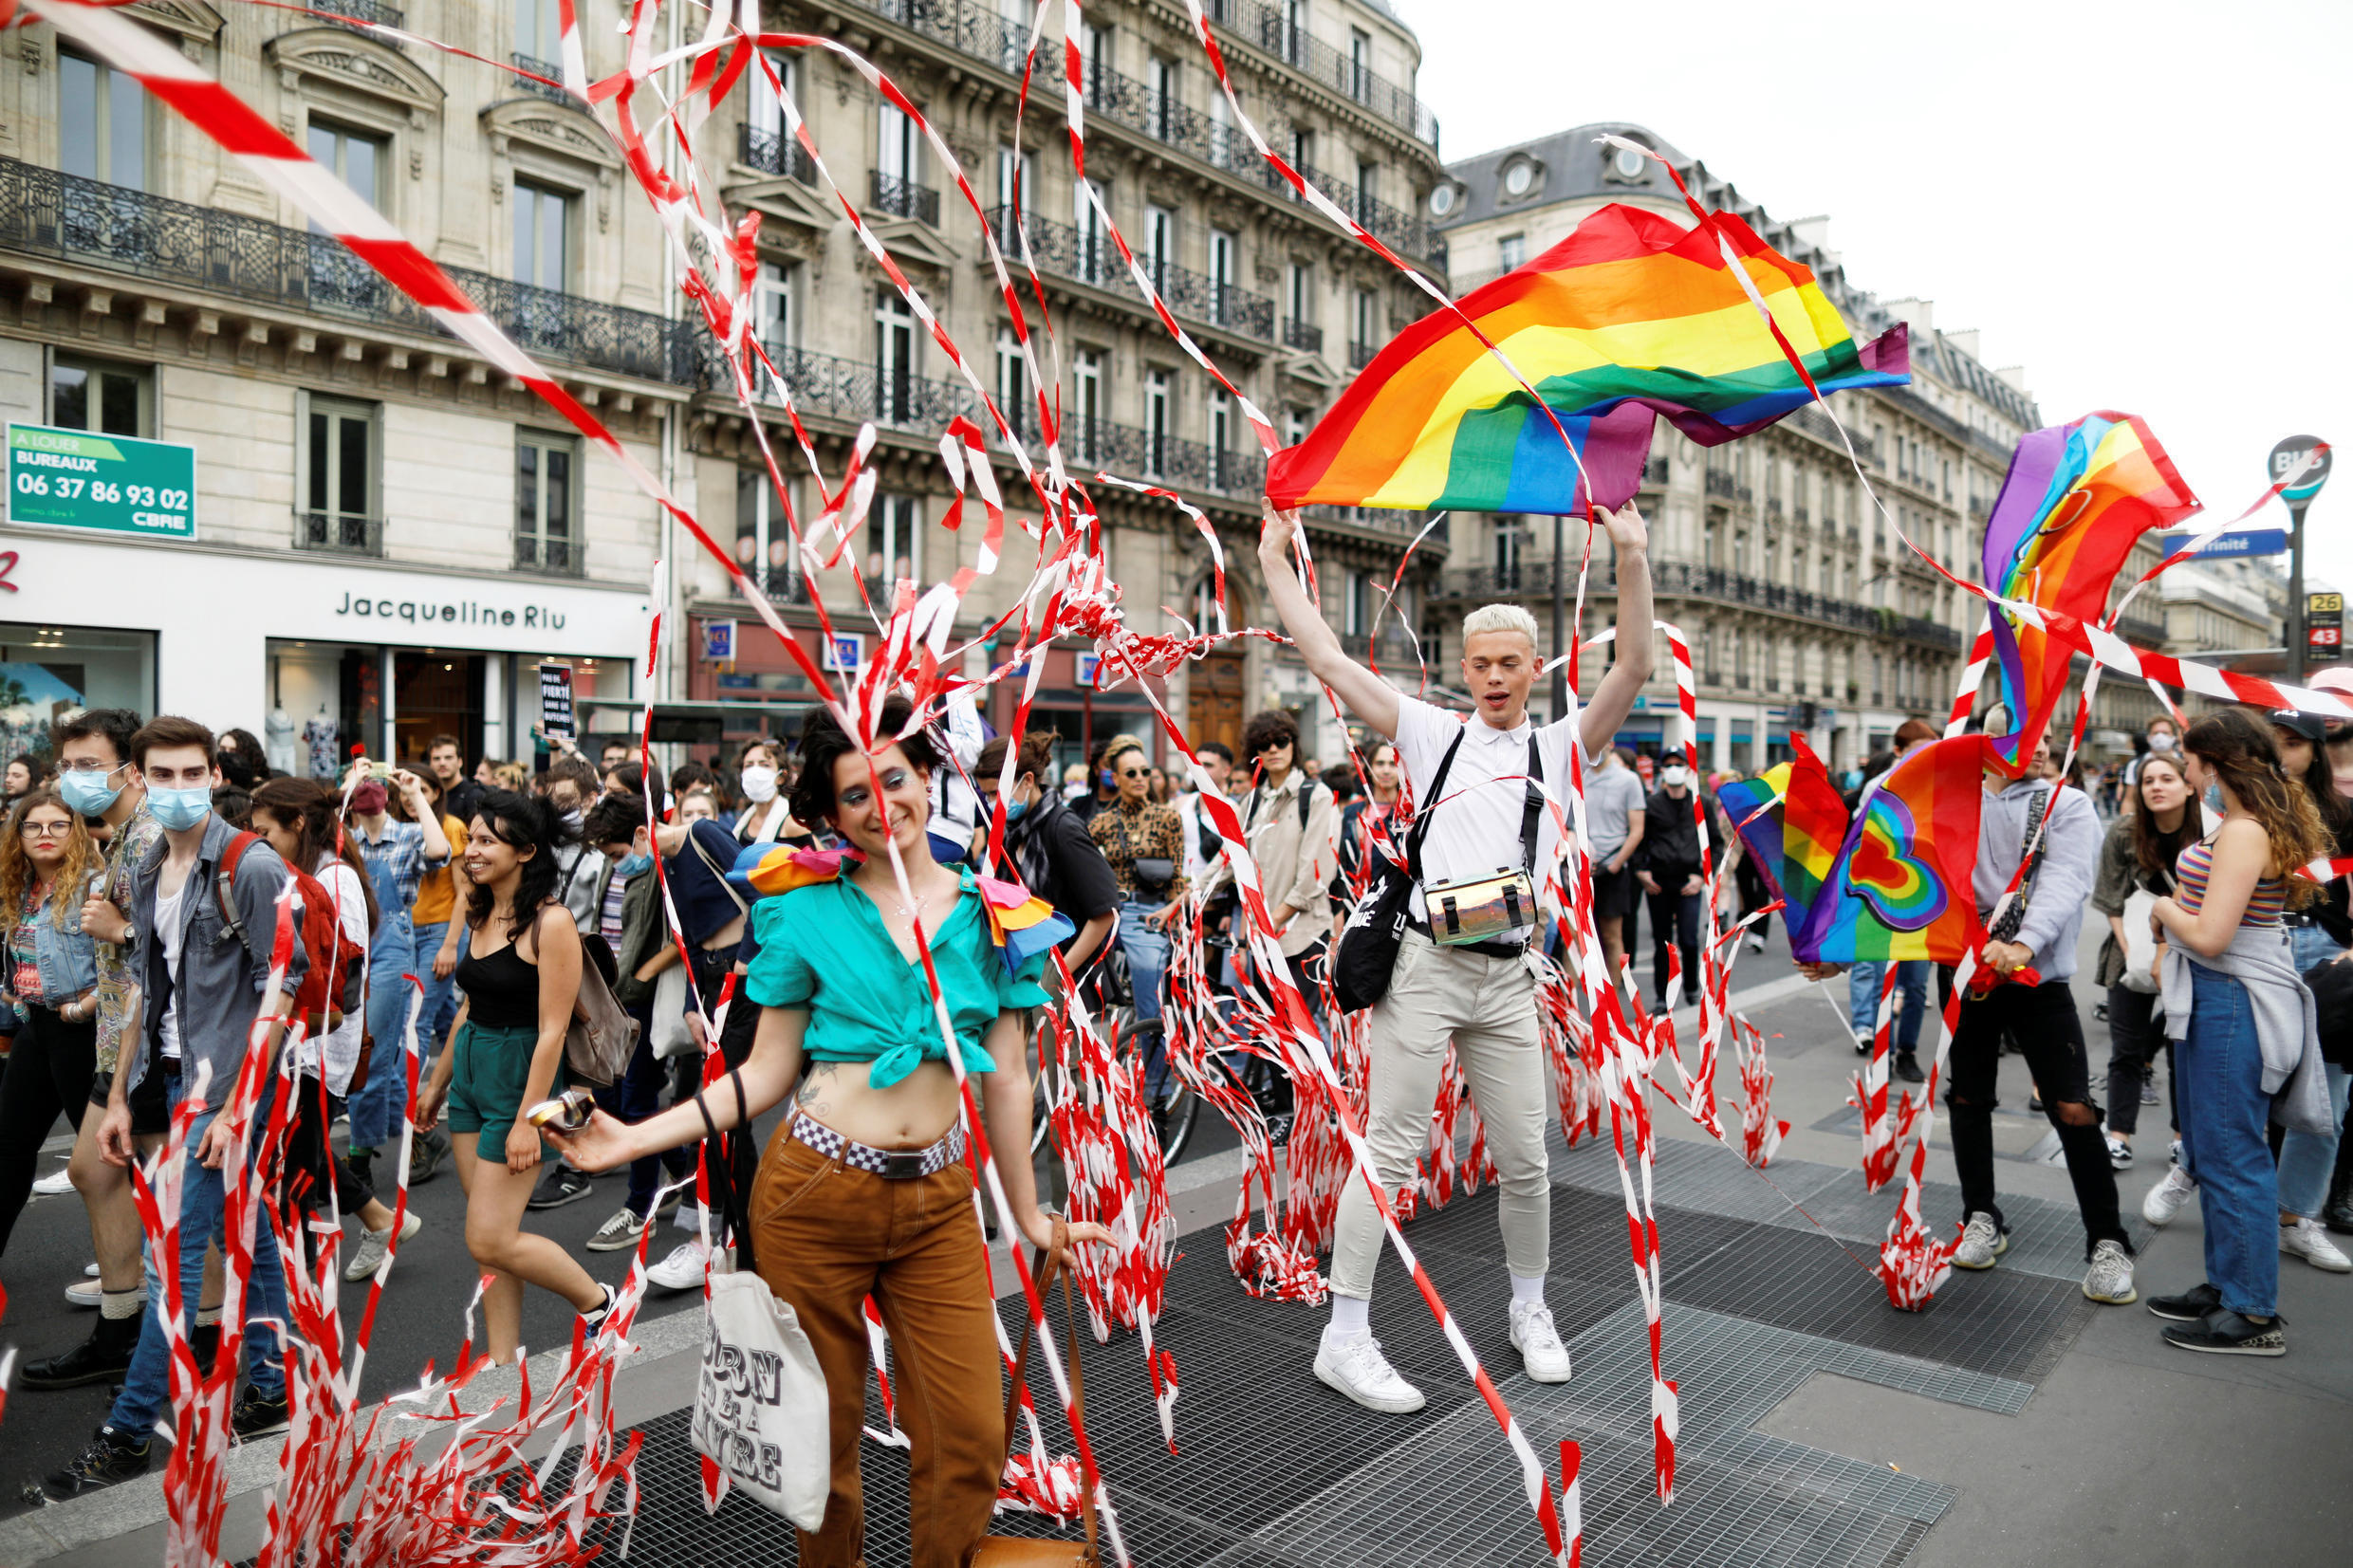 People attend an LGBT rights march despite social distancing restrictions forbidding gatherings of more than 10 people in Paris, France on July 4, 2020.